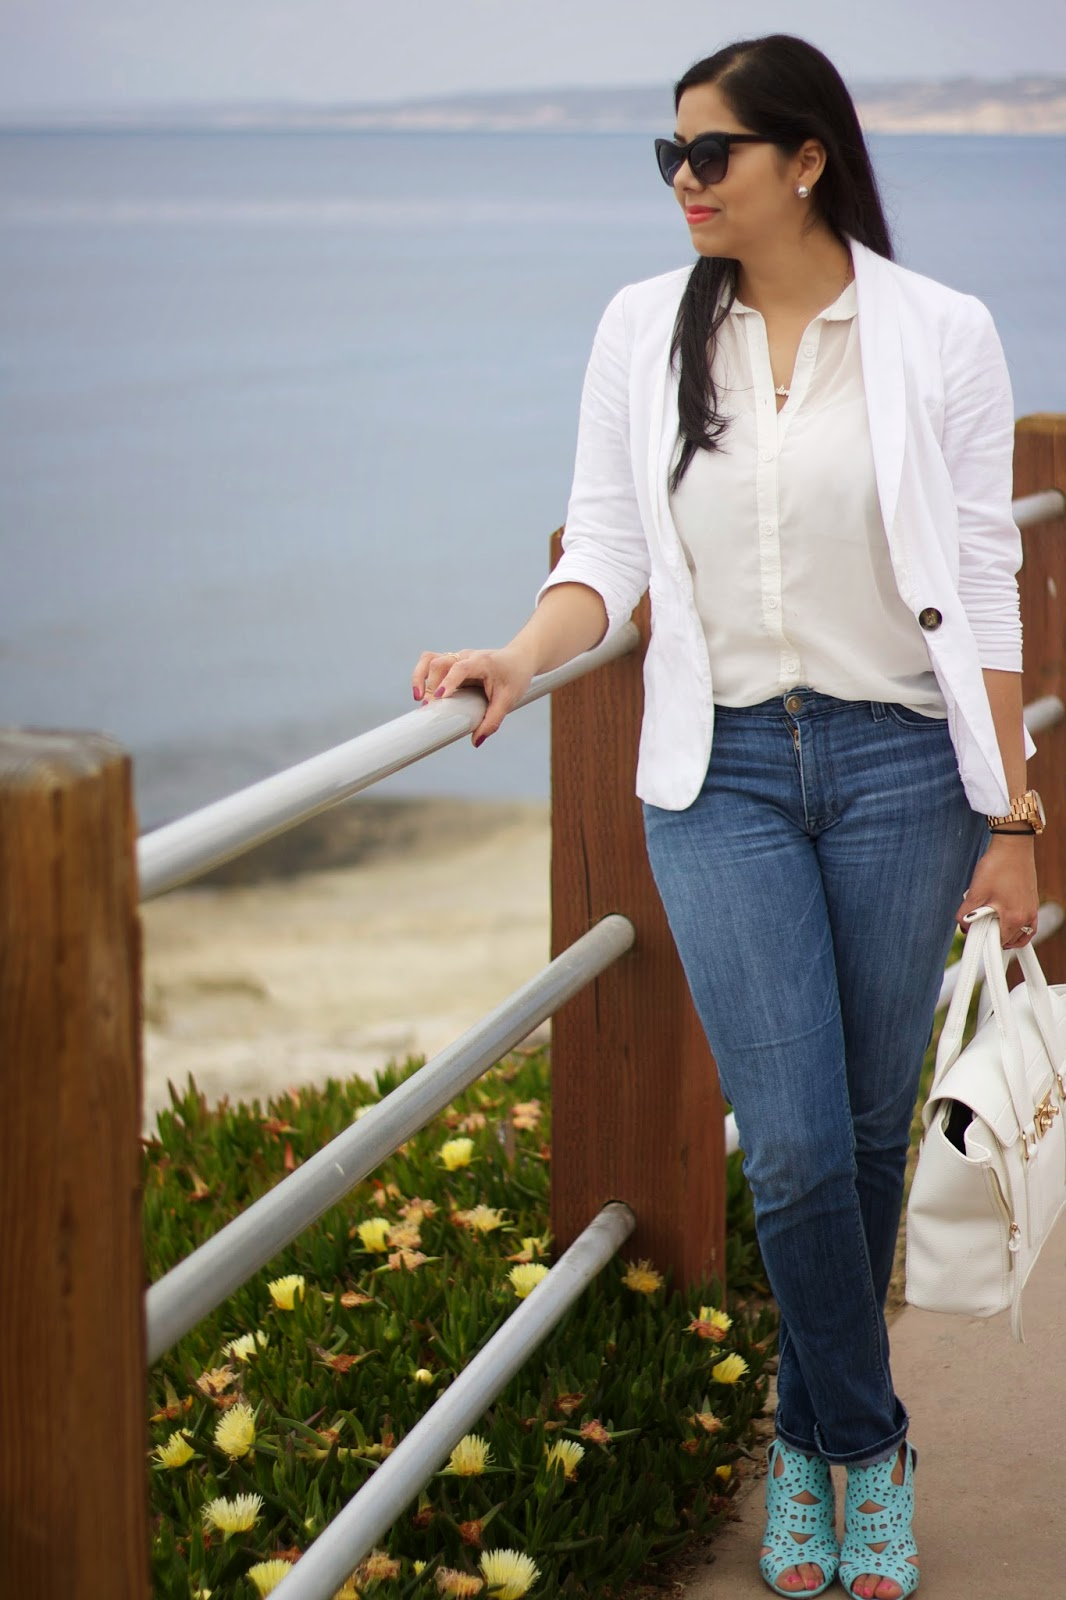 white top and jeans with statement shoes